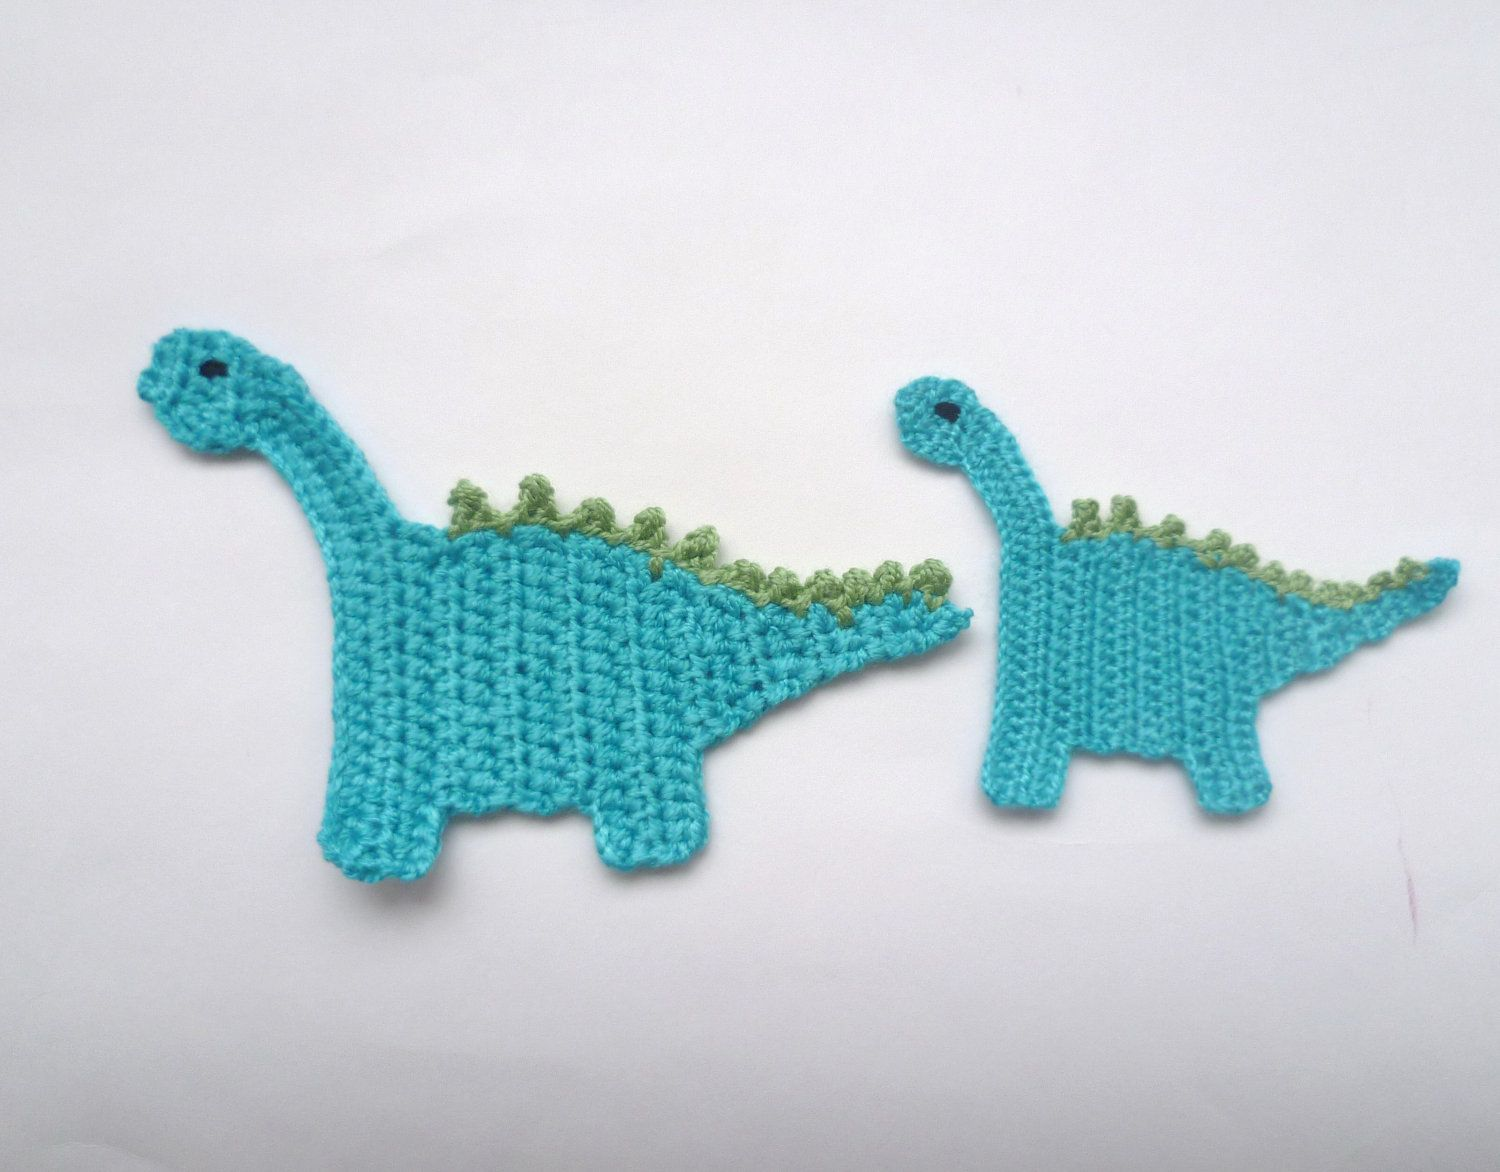 Applique Big And Small Dinosaur Crochet 2pcs - Supplies for baby ...